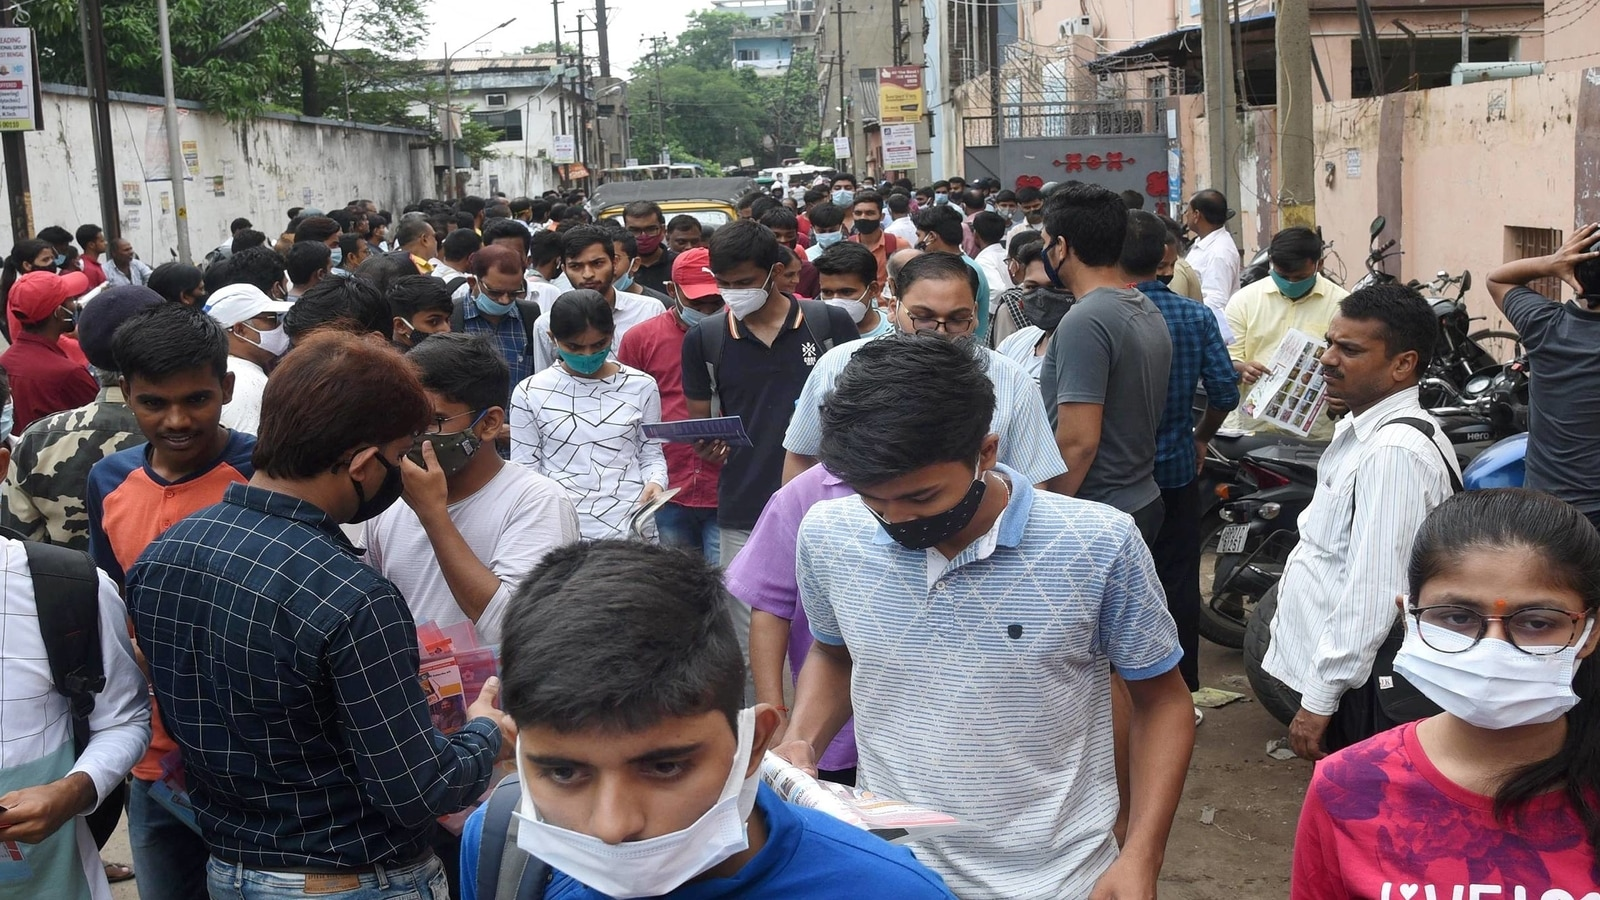 JEE Main 2021 third session exam concludes: What's next? Check Details